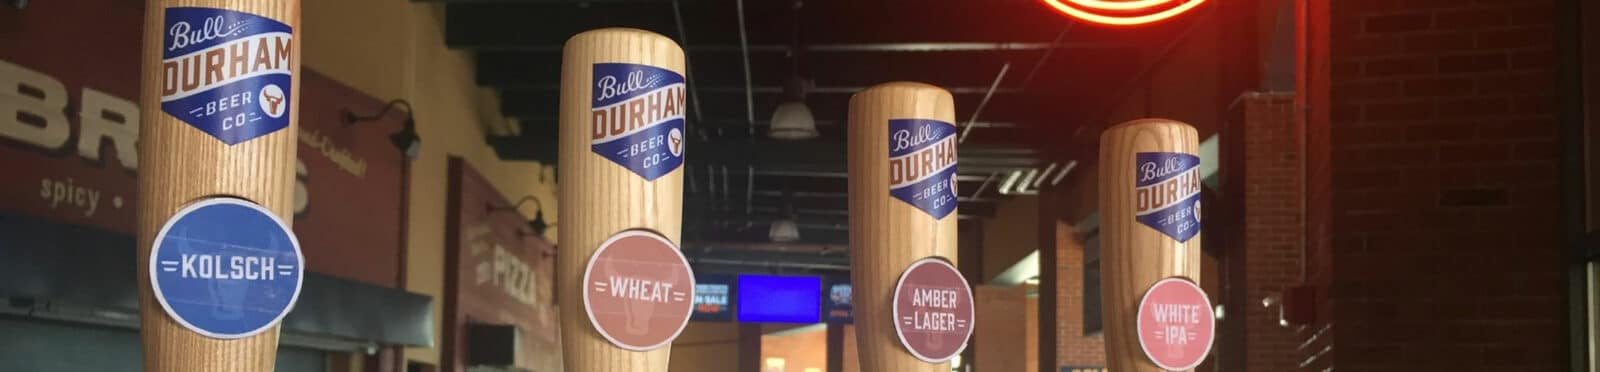 Beers from the Bull Durham Beer Co